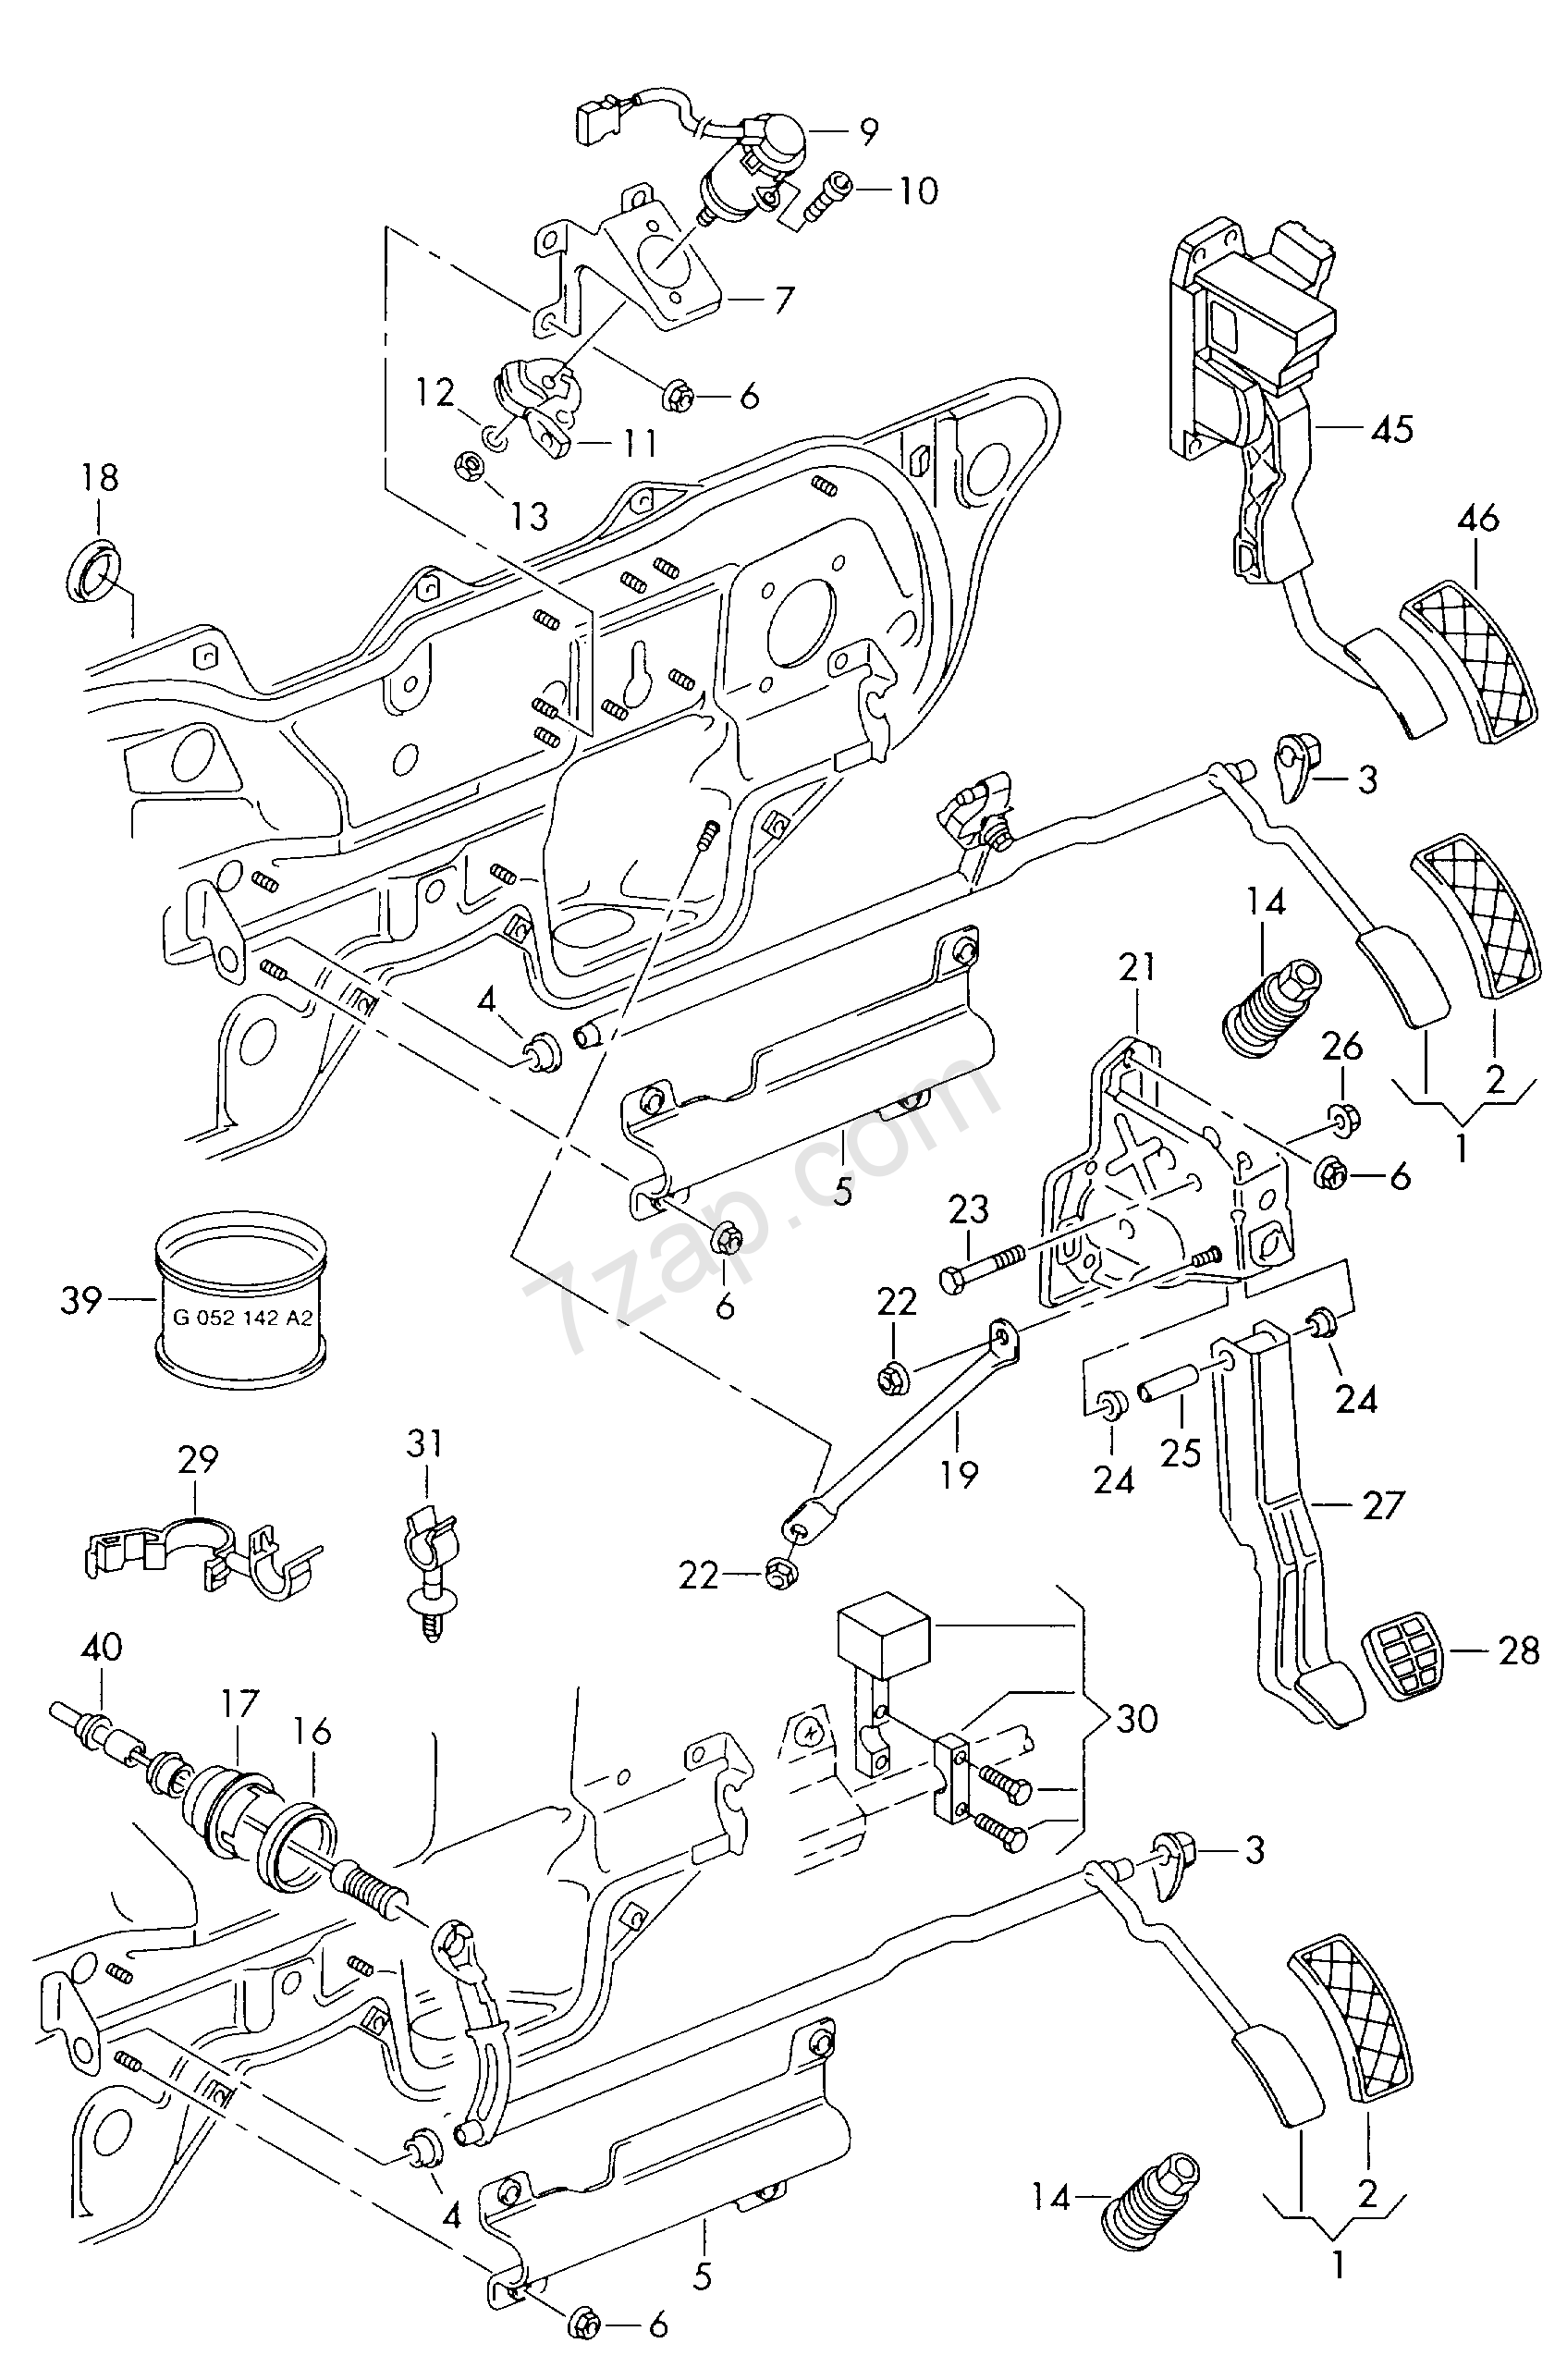 accelerator pedal with electronic module Golf/Variant